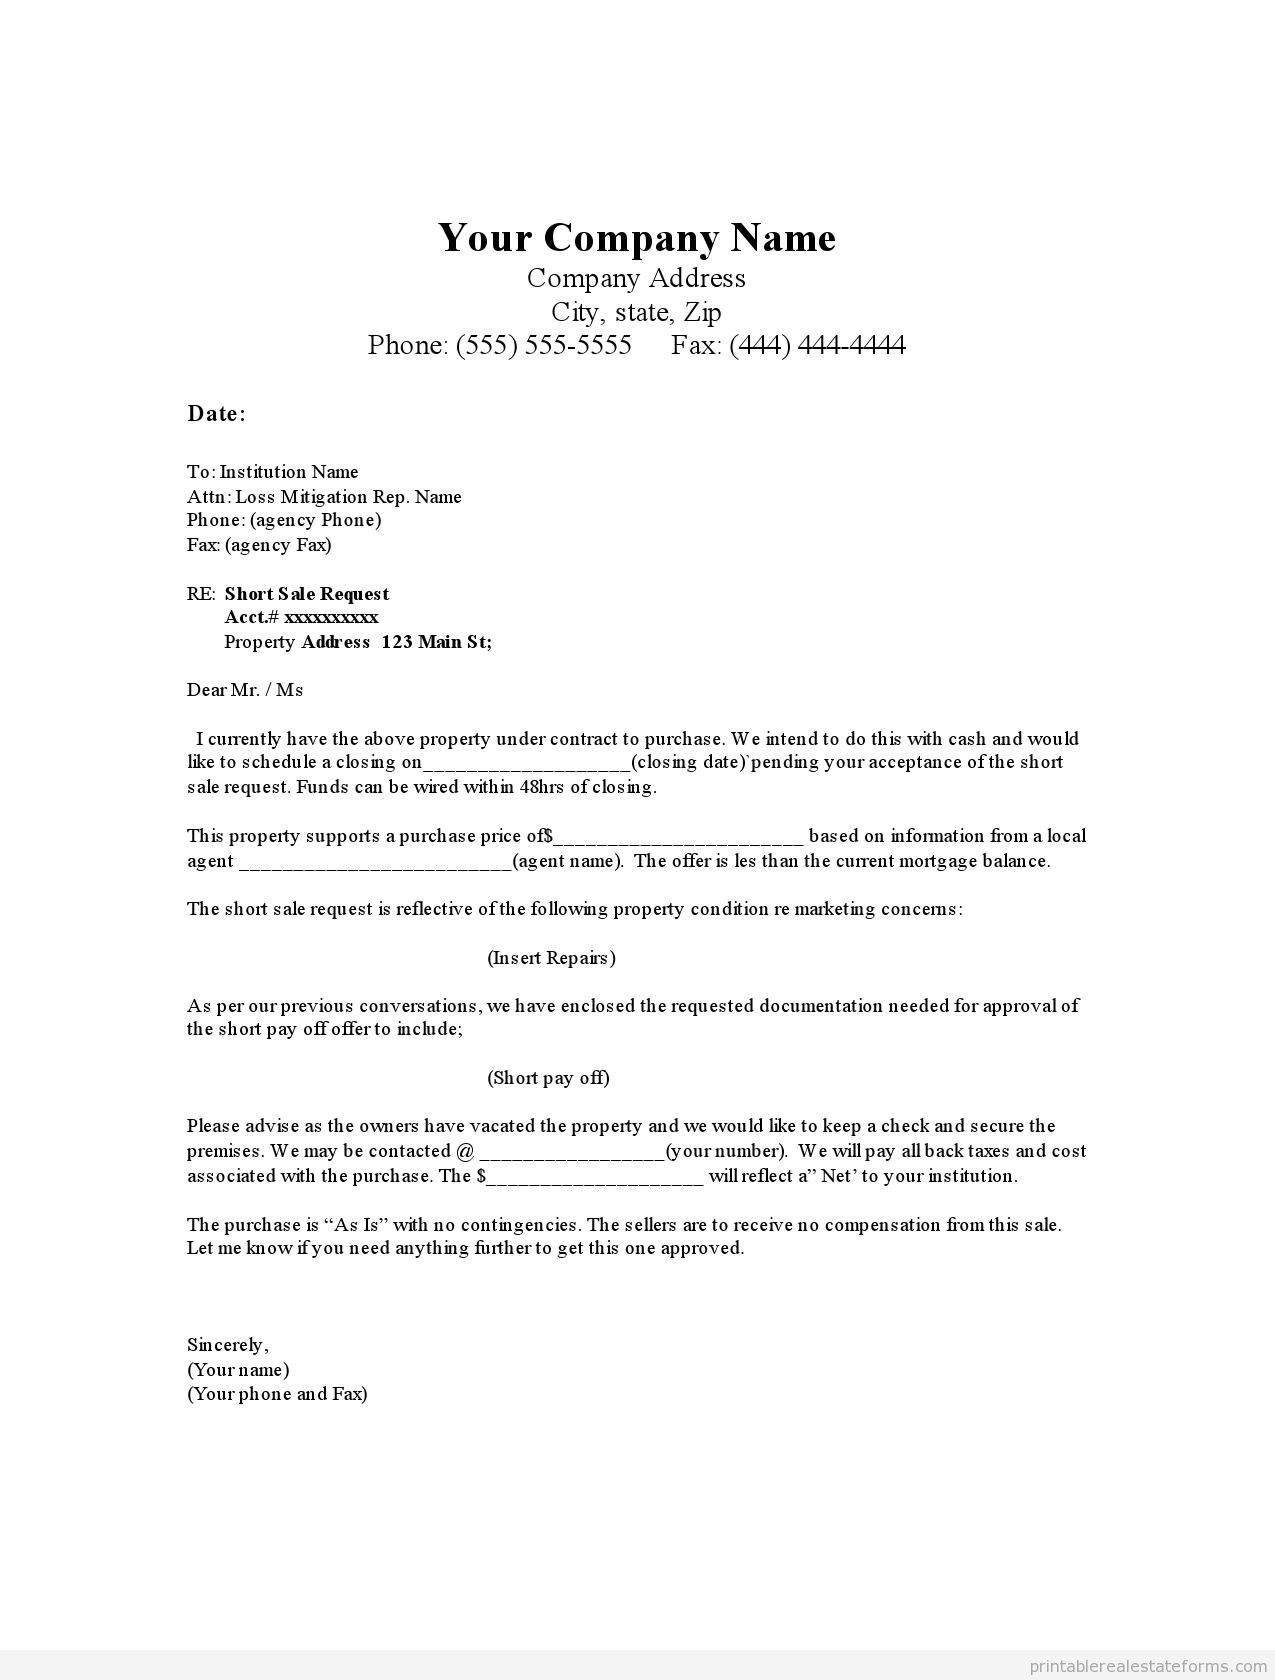 Letter Of Offer to Purchase Property Template - 24 Elegant Agreement Letter Sample for House